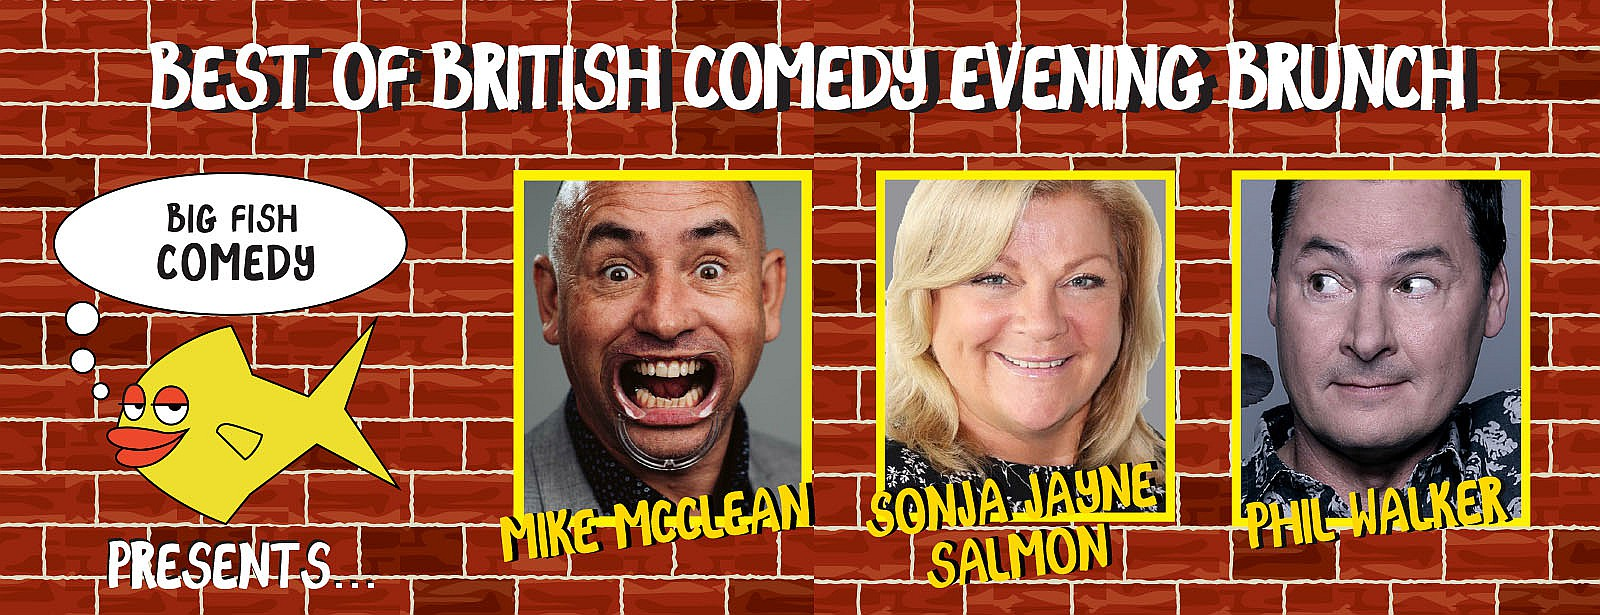 Best of British Comedy Evening Brunch